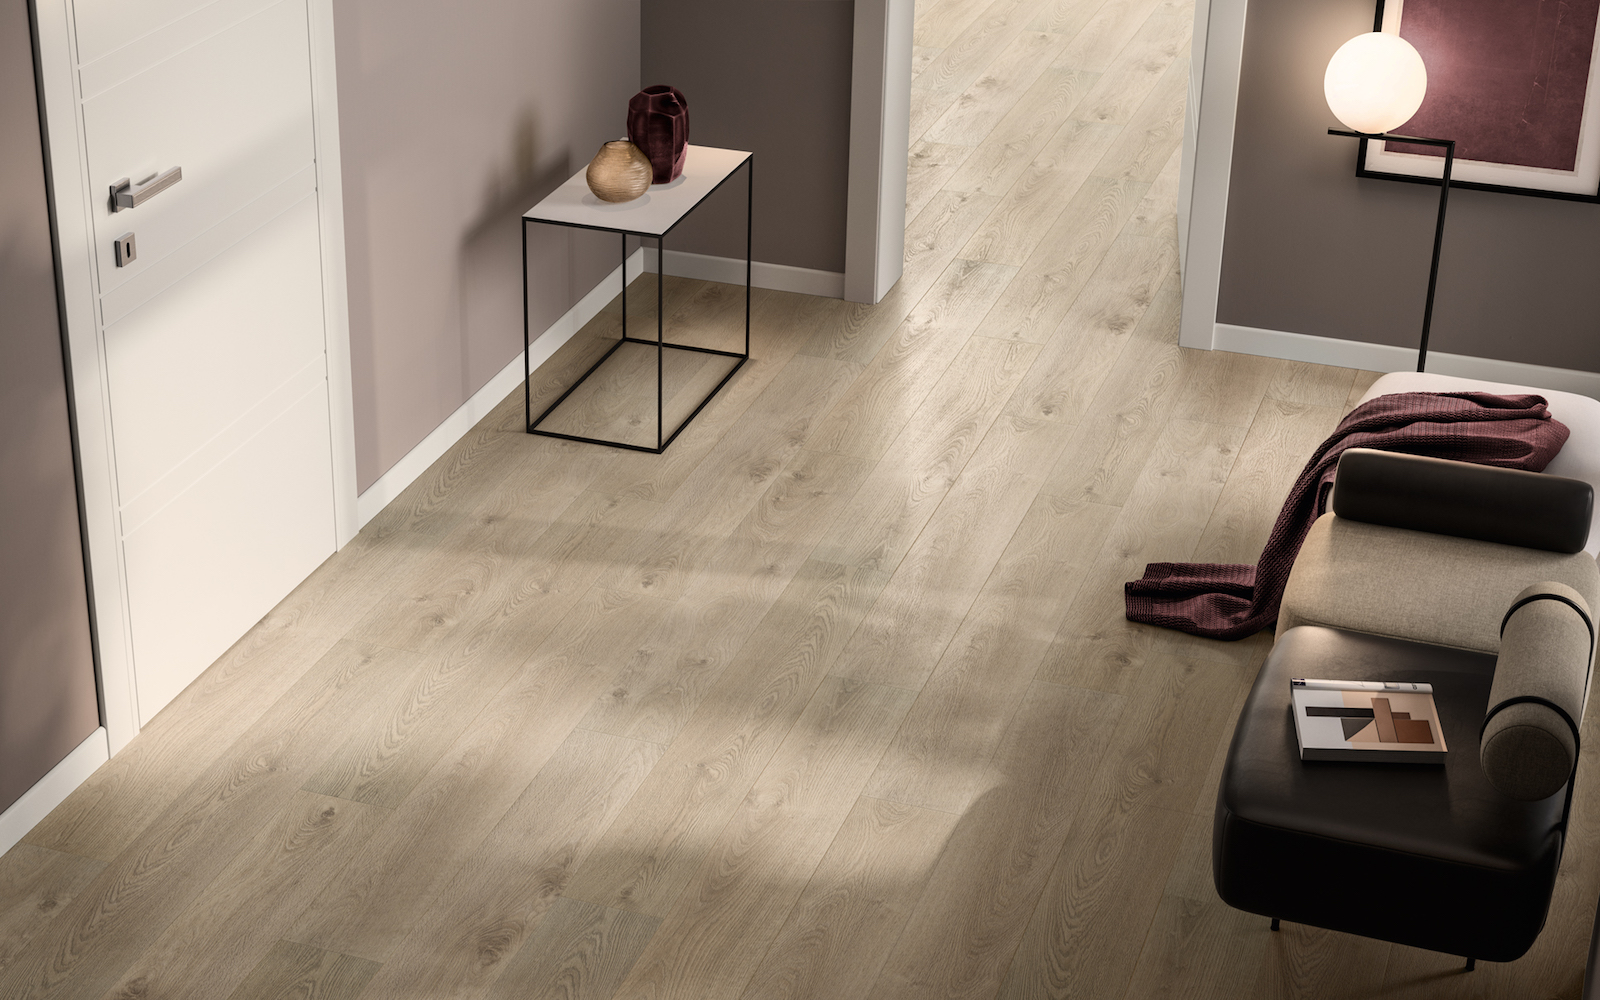 New generation floors pavimenti in laminato garofoli for Pavimento in laminato